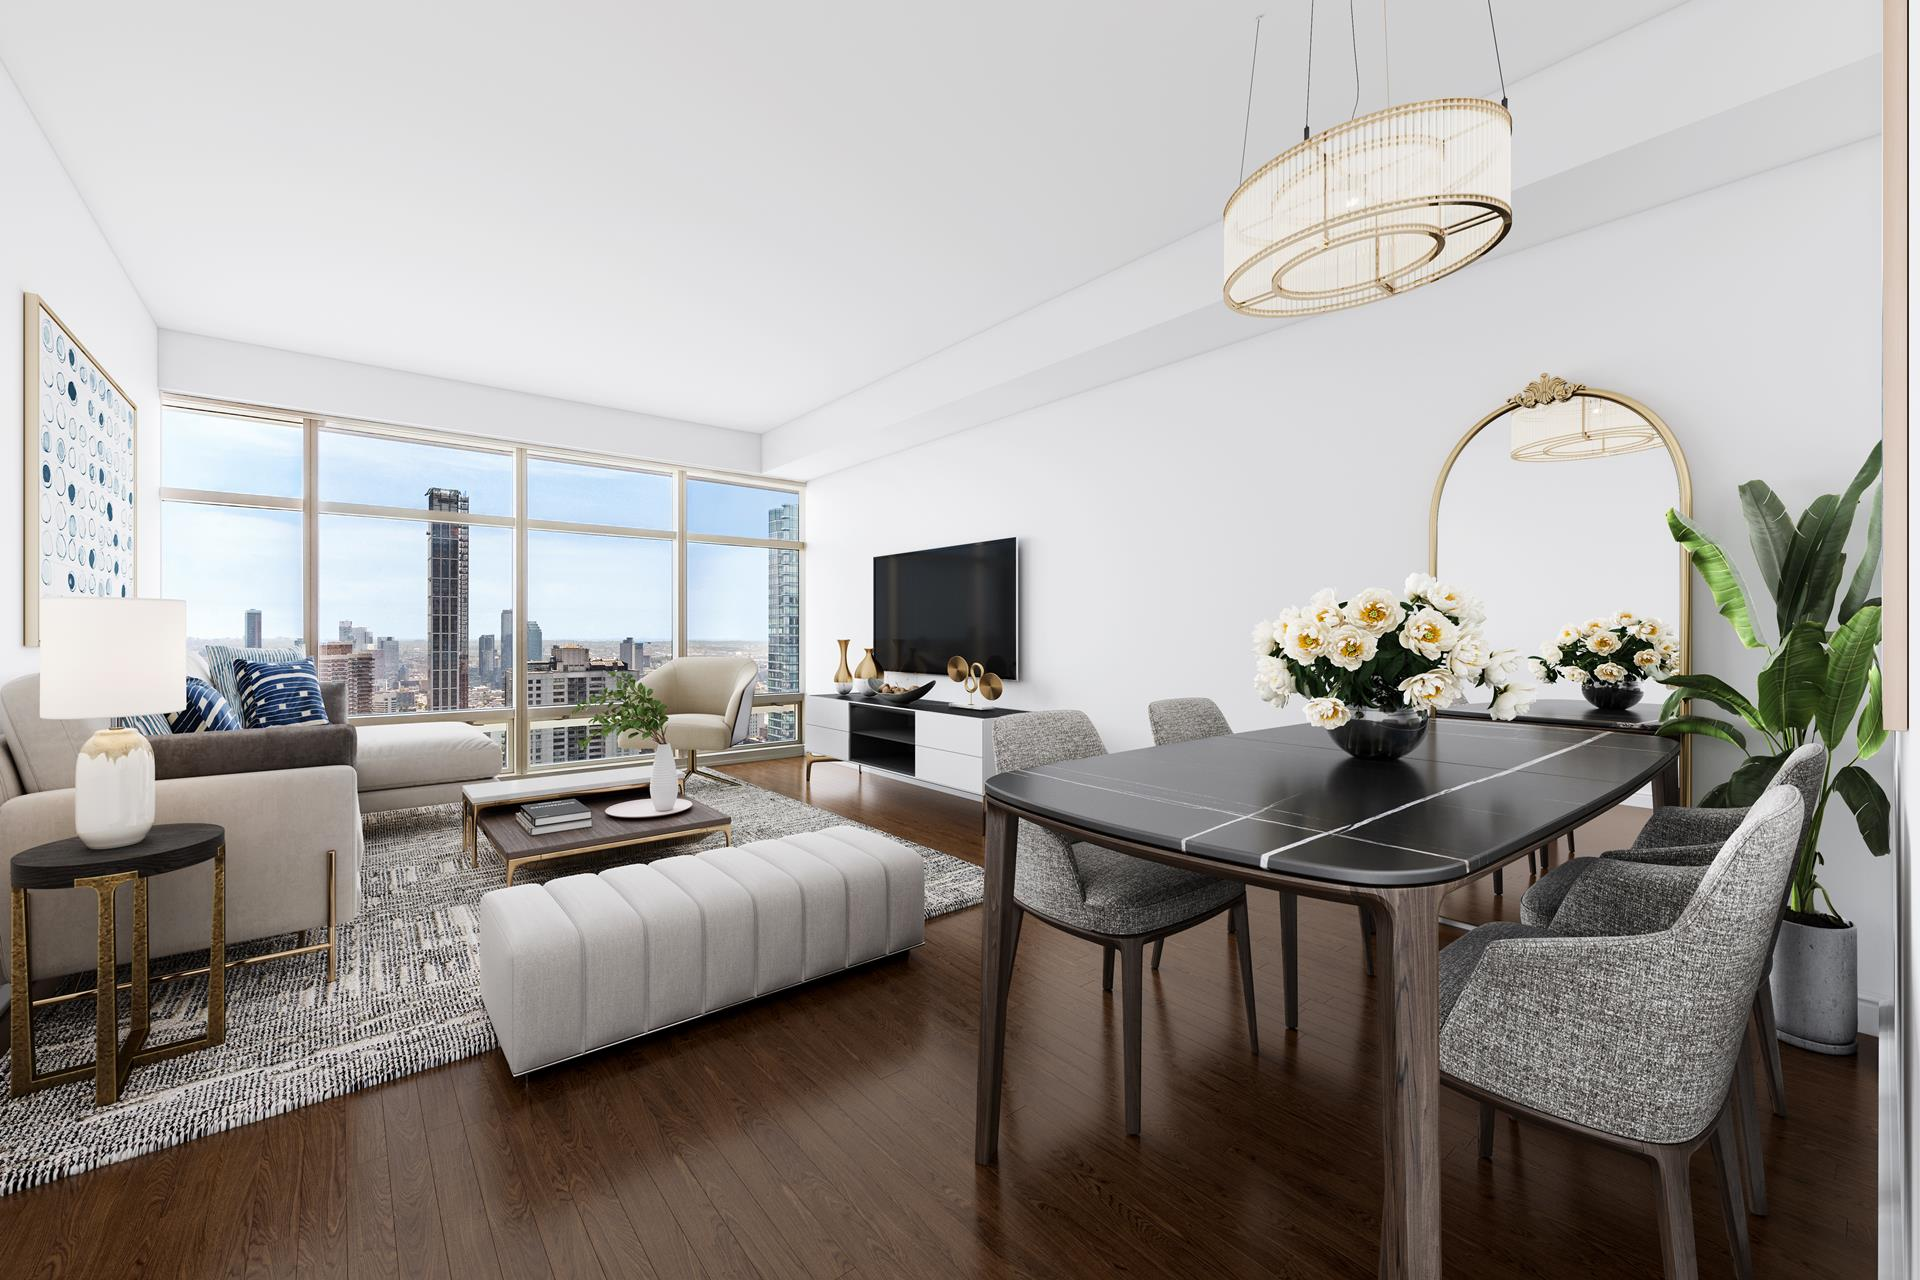 Rarely available at One Beacon Court. Residence 36C is a stunning 2-bedroom 2.5-bathroom condominium spanning 1,364 sq. ft and featuring unparalleled views East.   This residence features soaring 11-foot ceilings, beautiful custom built-in cabinetry, detailed   molding and solid hardwood floors throughout.     Gorgeous city, East River and bridge views in every room are enjoyed through the quiet, sun-drenched, massive floor-to-ceiling windows. The living and dining area offers ample space for entertaining. The kitchen features a wrap-around counter, lacquered cabinetry,   top-of-the-line stainless steel appliances and a solid stone countertop. The primary bedroom is a sprawling 17.5x12.5 and boasts a large custom built walk-in closet and stunning, mint-condition, 5-fixture marble-encased en suite bathroom with deep soak tub.   The secondary bedroom features its own en suite bathroom.      One Beacon Court is one of Manhattans most coveted, white-glove condominiums. Amenities include a concierge, 24 Hour Doorman, Resident Building Manager, fitness center, massage room, business center, private lounge, playroom, valet parking and a drive-in porte-cochere   entrance. One Beacon Court is premier New York City living, situated close to shopping, fine dining, art galleries, museums, Central Park and more.